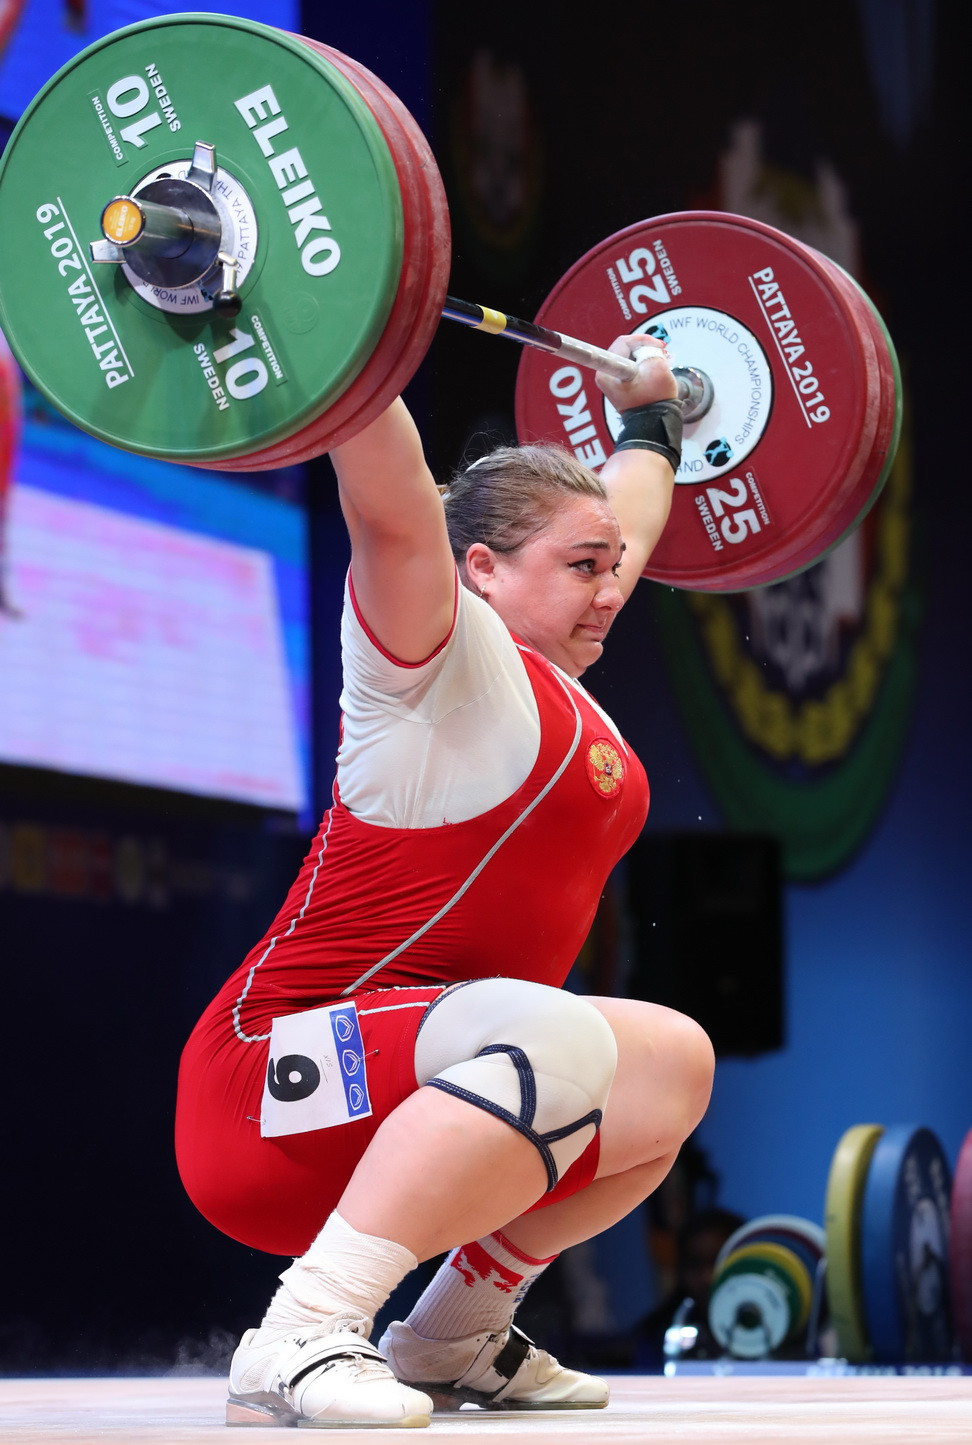 Both those records previously belonged to Russia's Tatiana Kashirina, who was the silver medallist across all three events today ©IWF